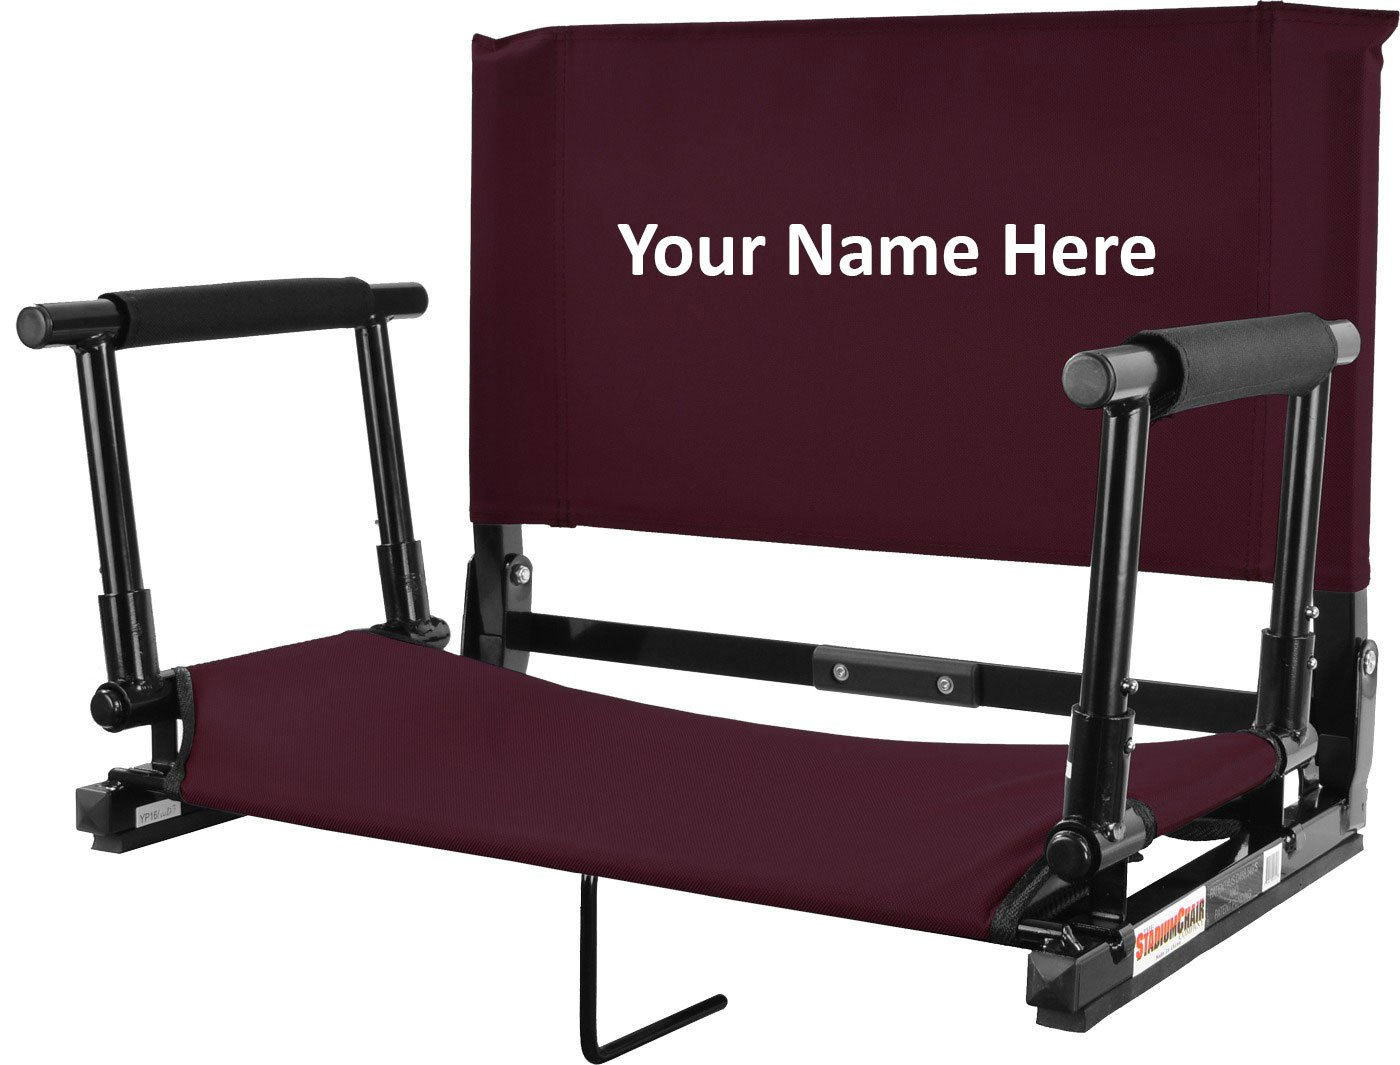 Personalized刺繍新しいデラックスWide Stadium椅子Gamechanger Bleacher Seat with Optional Arms B01N0C1NAH Maroon with Arms Maroon with Arms